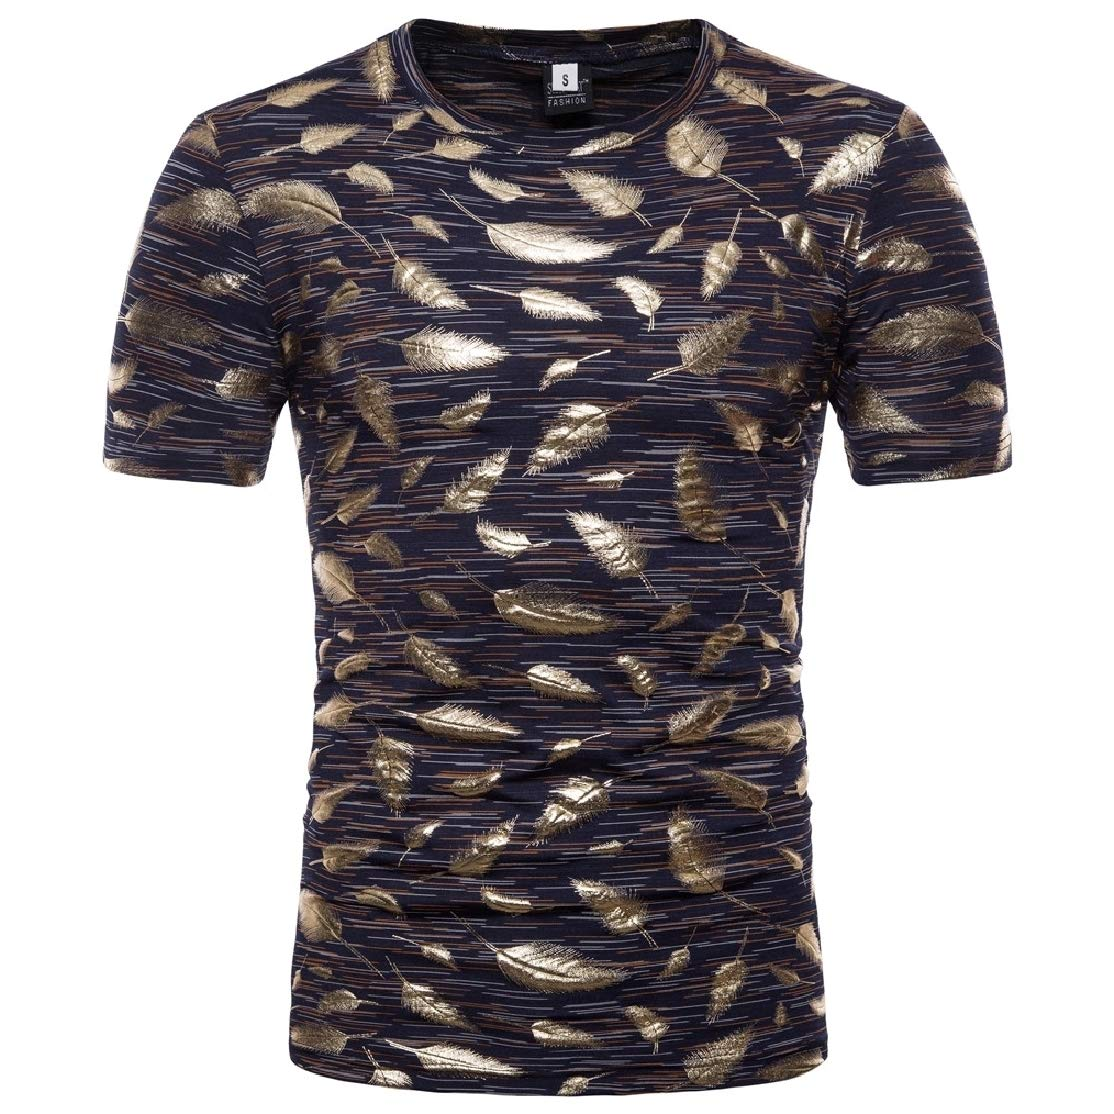 Colourful Mens Short-Sleeve Floral Spring Plus Size Gilded T-Shirt Top